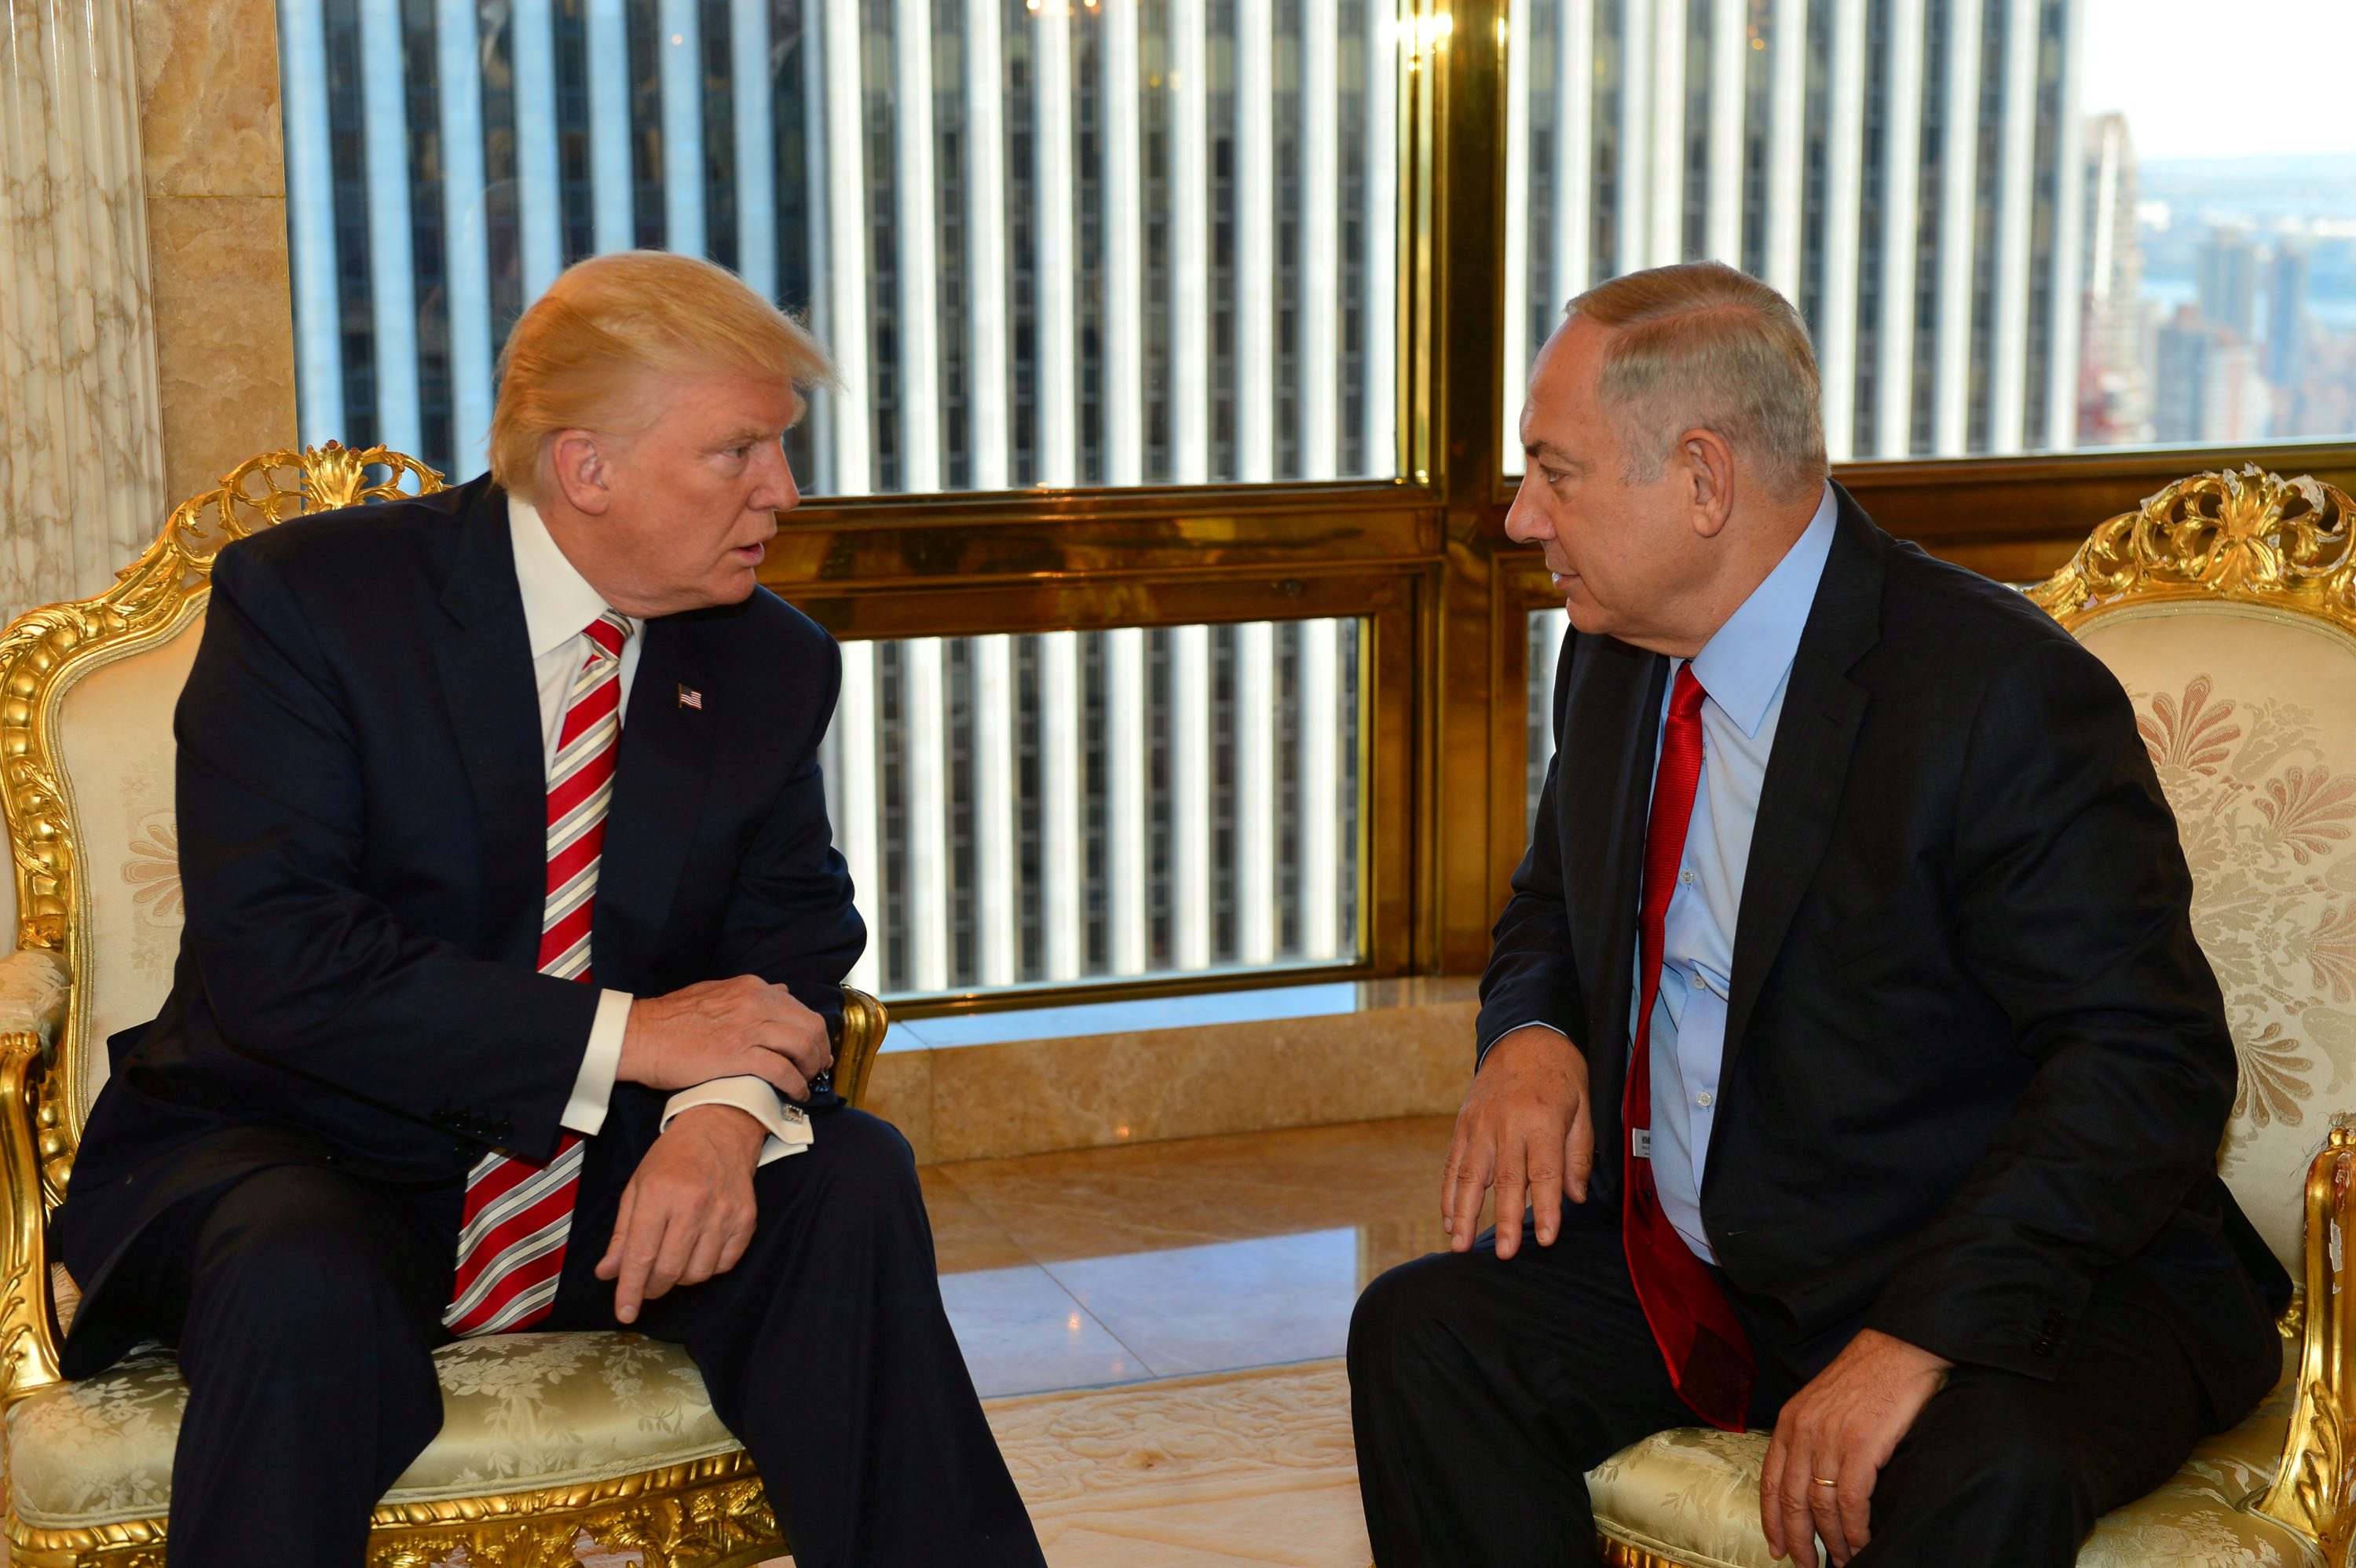 Israeli Prime Minister Benjamin Netanyahu, right, speaks to U.S. presidential candidate Donald Trump during their meeting in New York, Sept. 25, 2016.